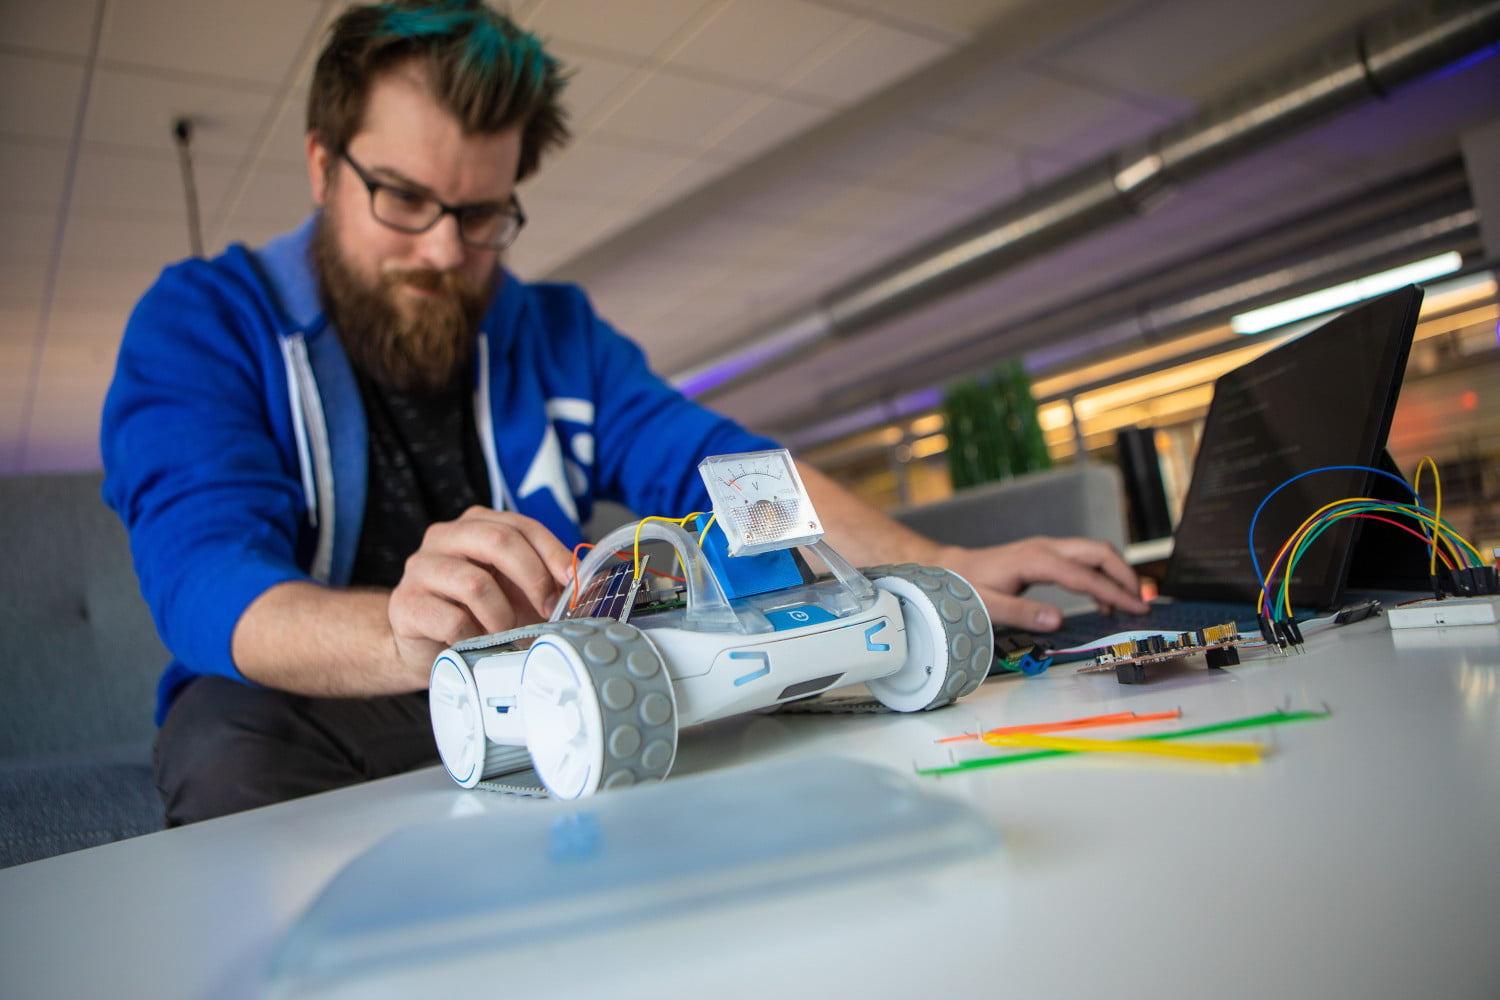 The new Sphero RVR is a fully programmable, expandable robot car